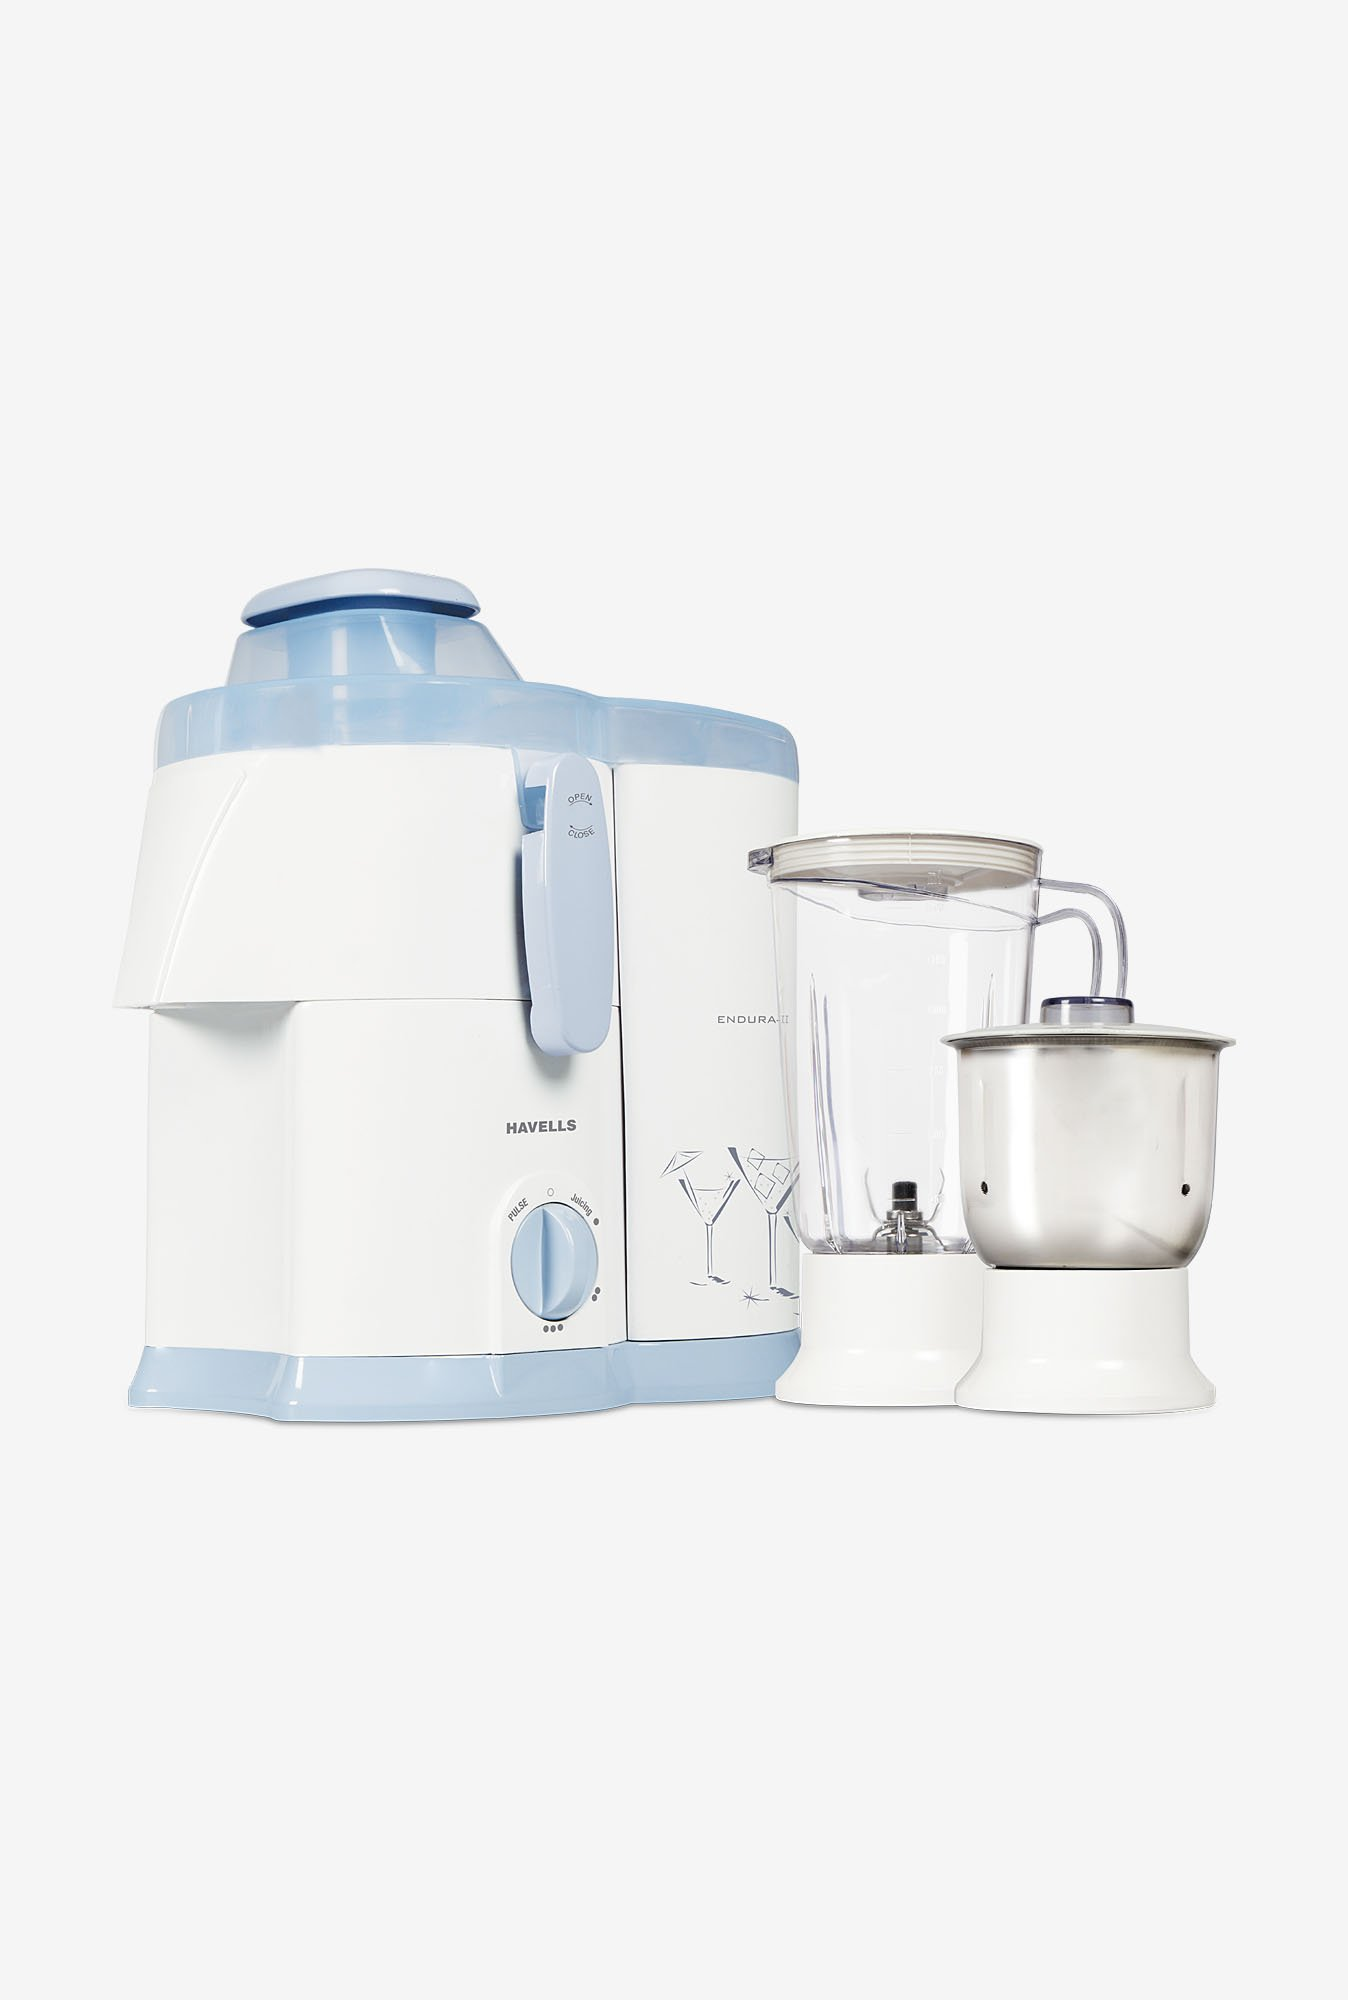 Havells 500-Watt 2 Jar ENDURA Juicer Mixer Grinder White